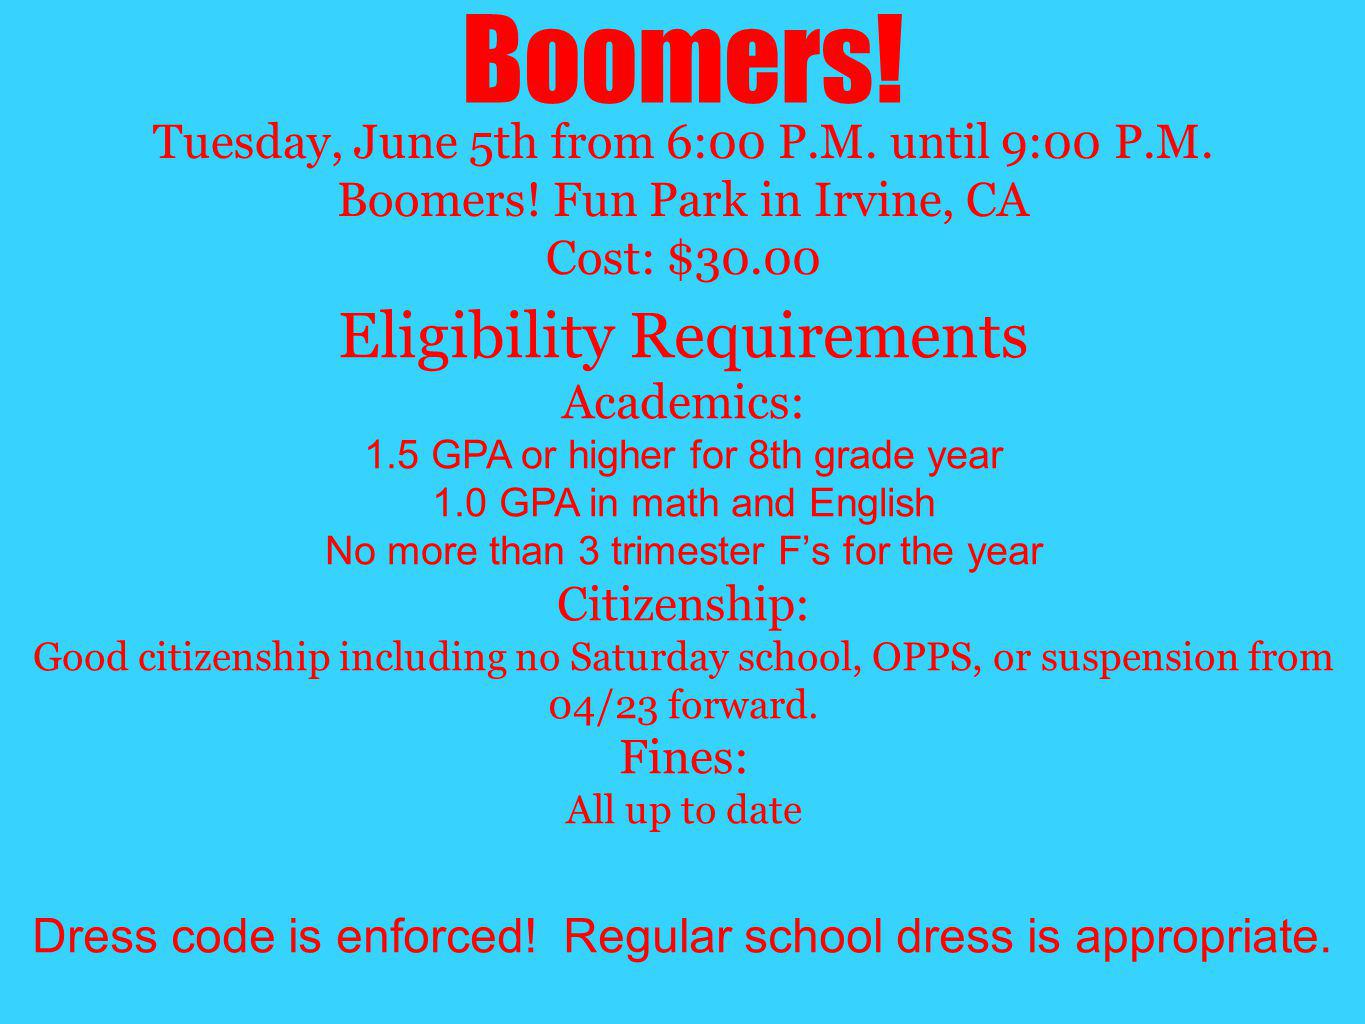 Boomers! Eligibility Requirements